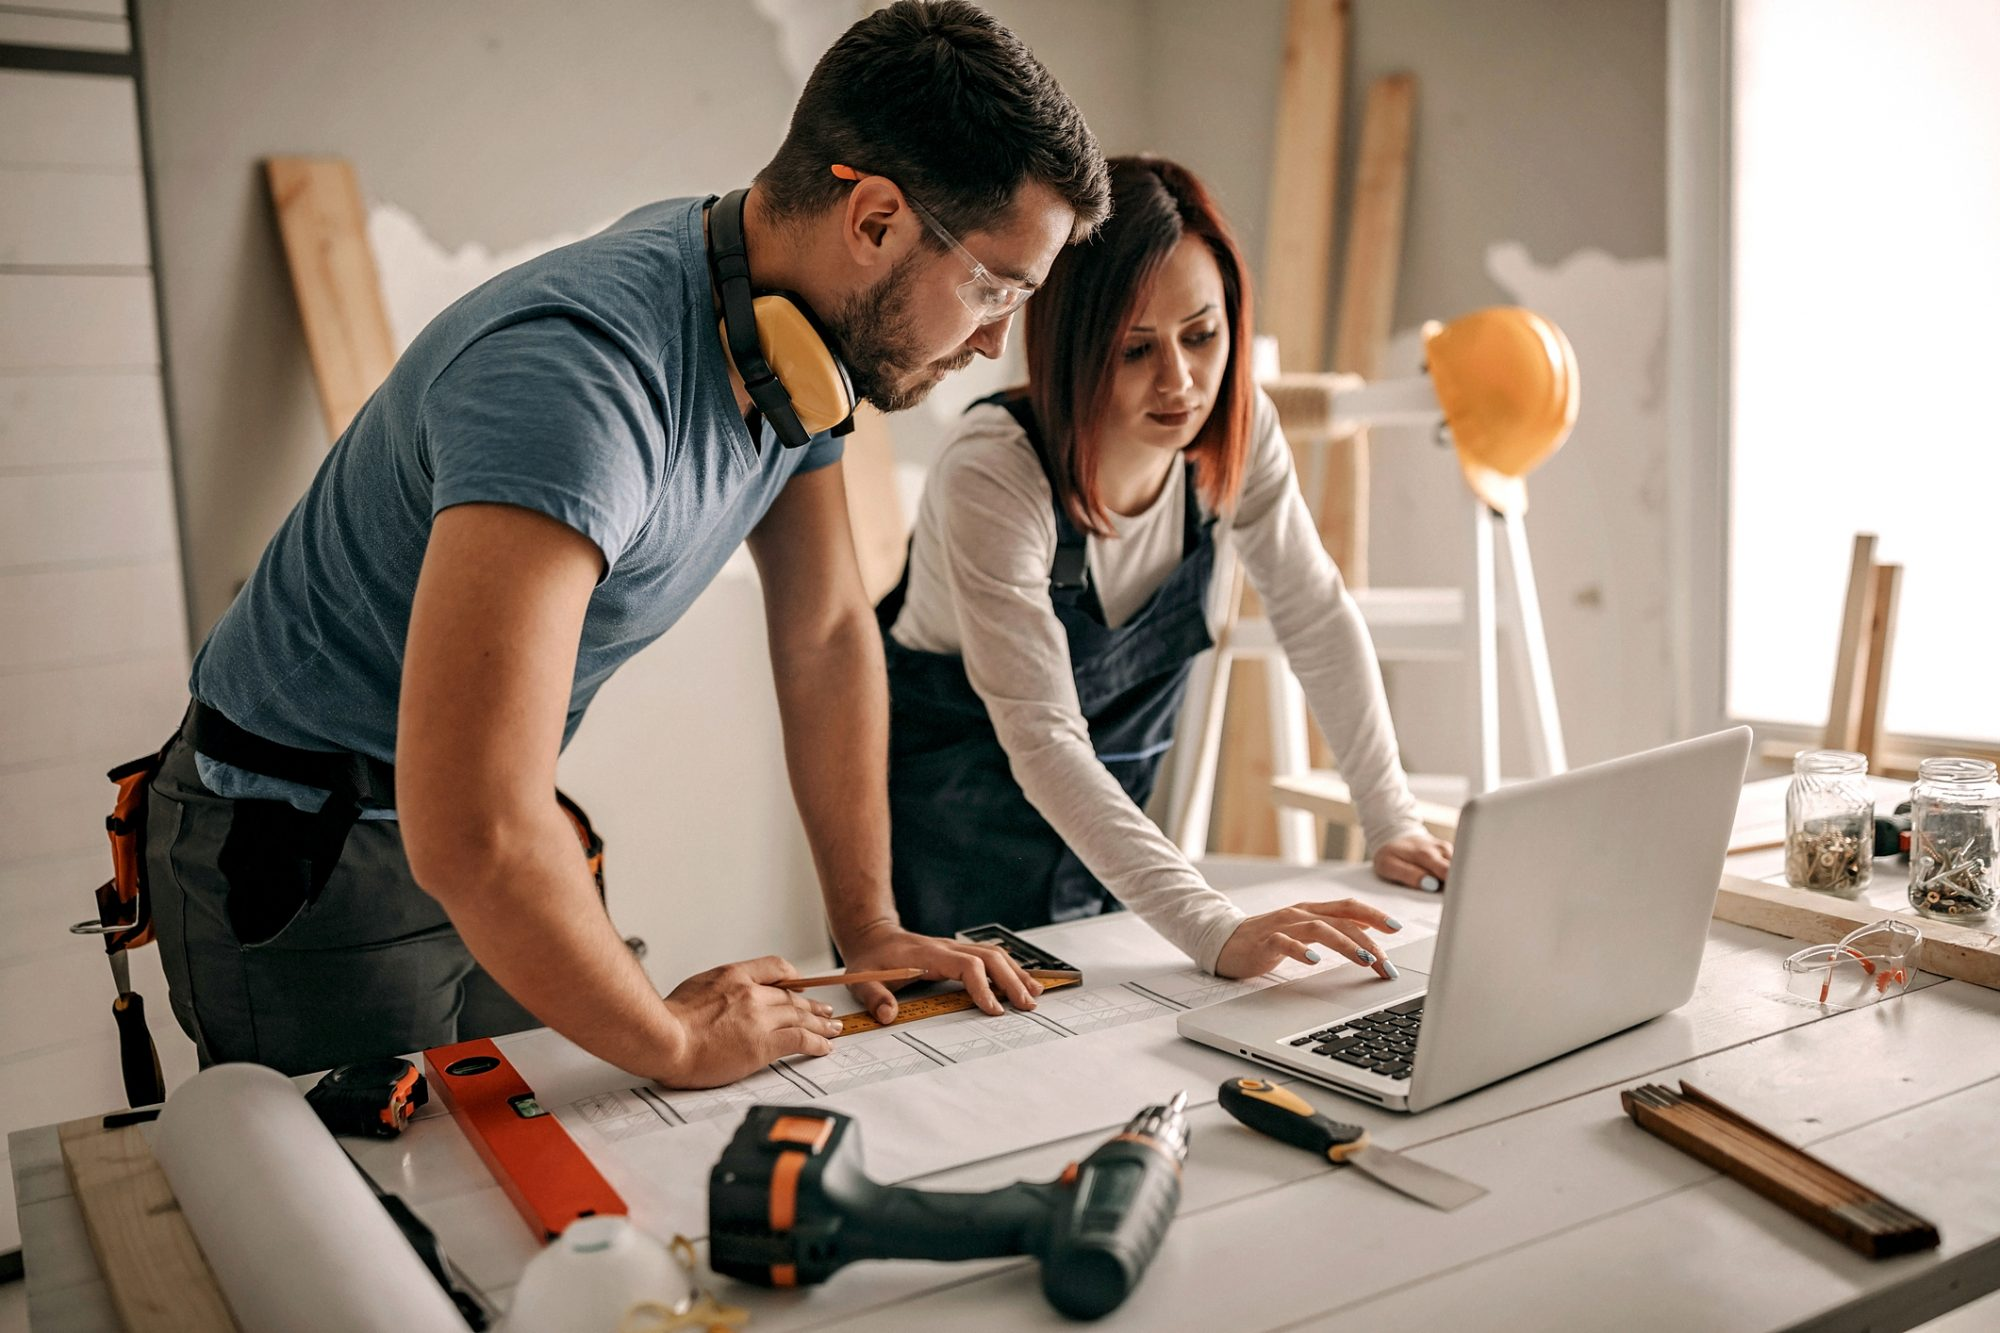 Man and Woman Look at Renovation Plans on Laptop